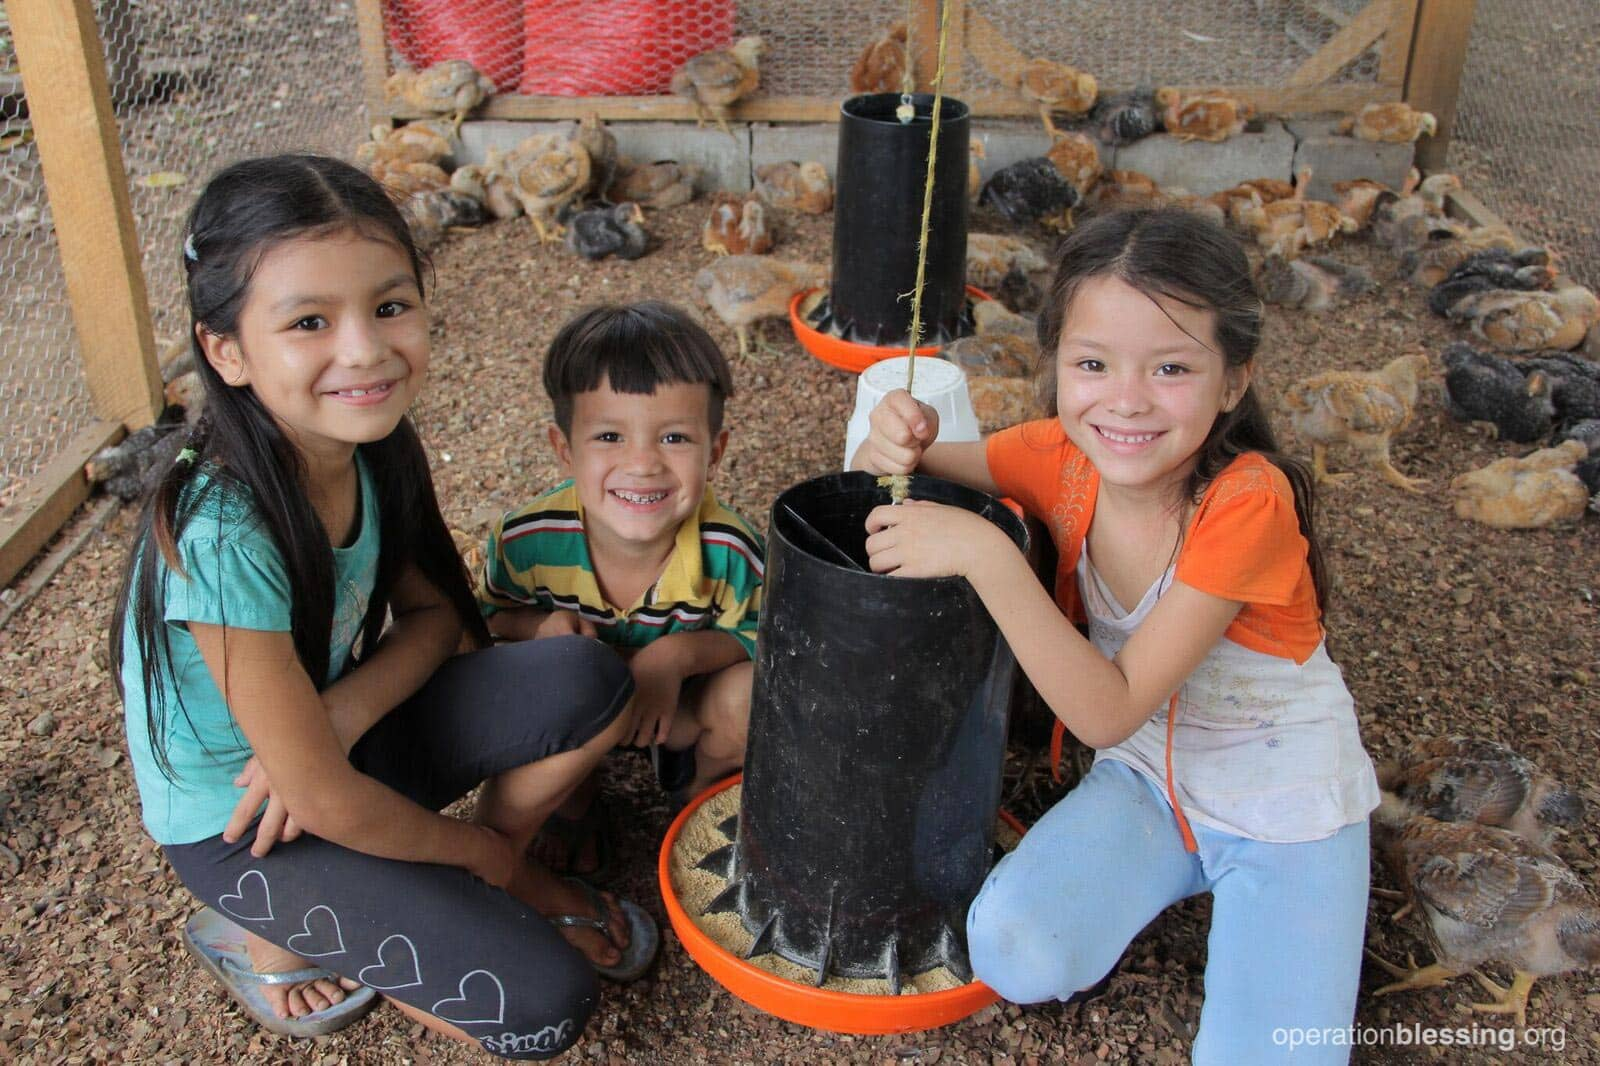 Santos's three happy children with the chickens in the coop.